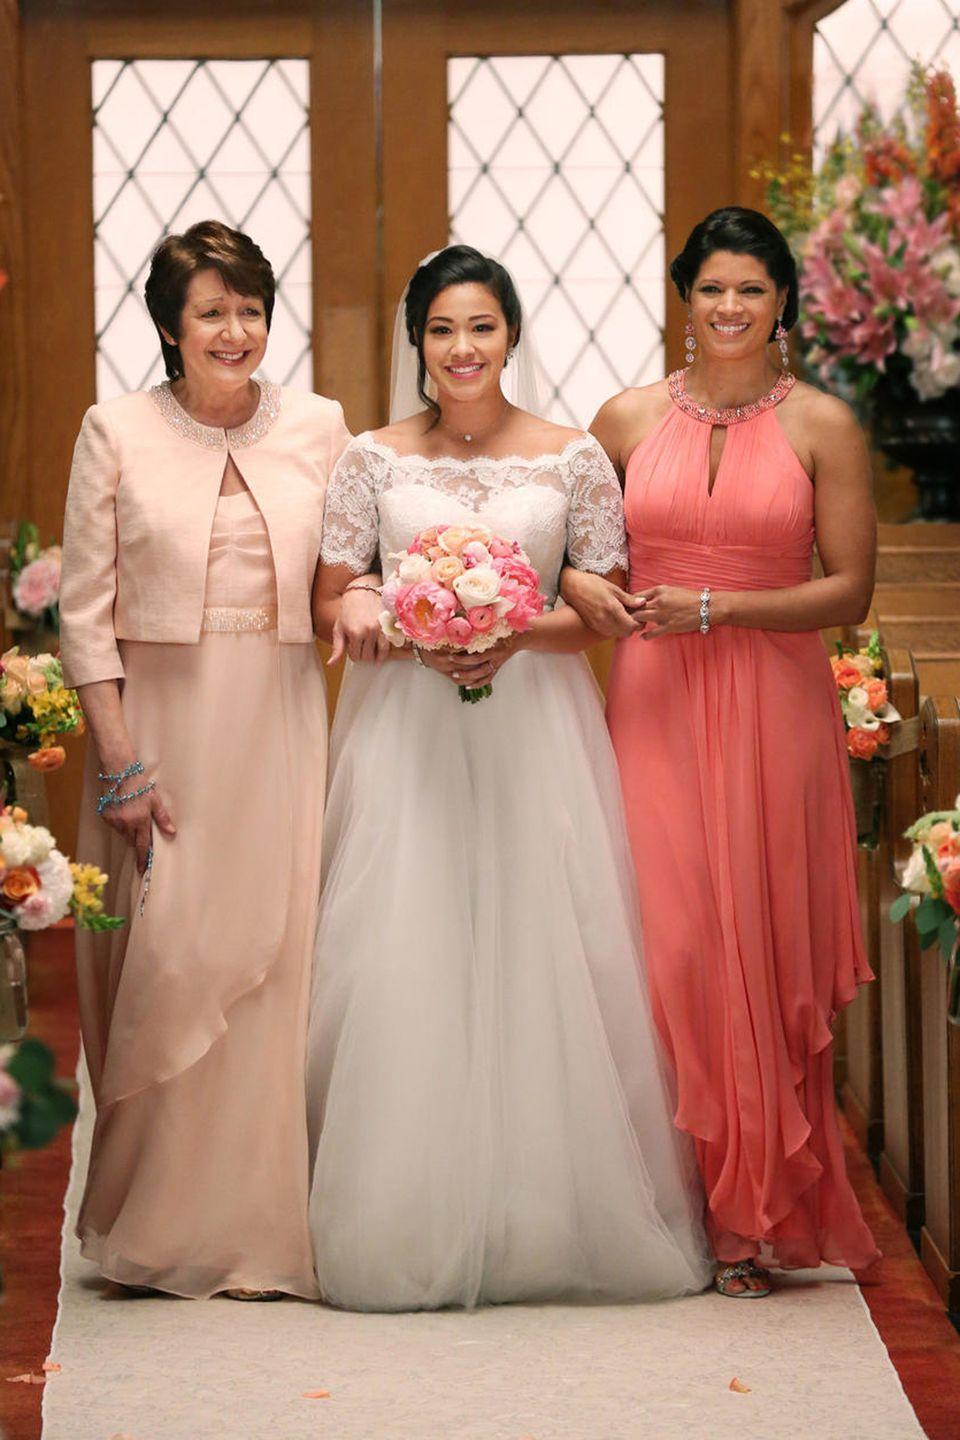 <p>Viewers were dying to see who Jane would end up with in the beginning of the show—Rafael or Michael—but in the end, she walked down the aisle to marry Michael in the season 2 finale. She wore a lace boatneck gown, pinning her hair in an elegant updo. </p>